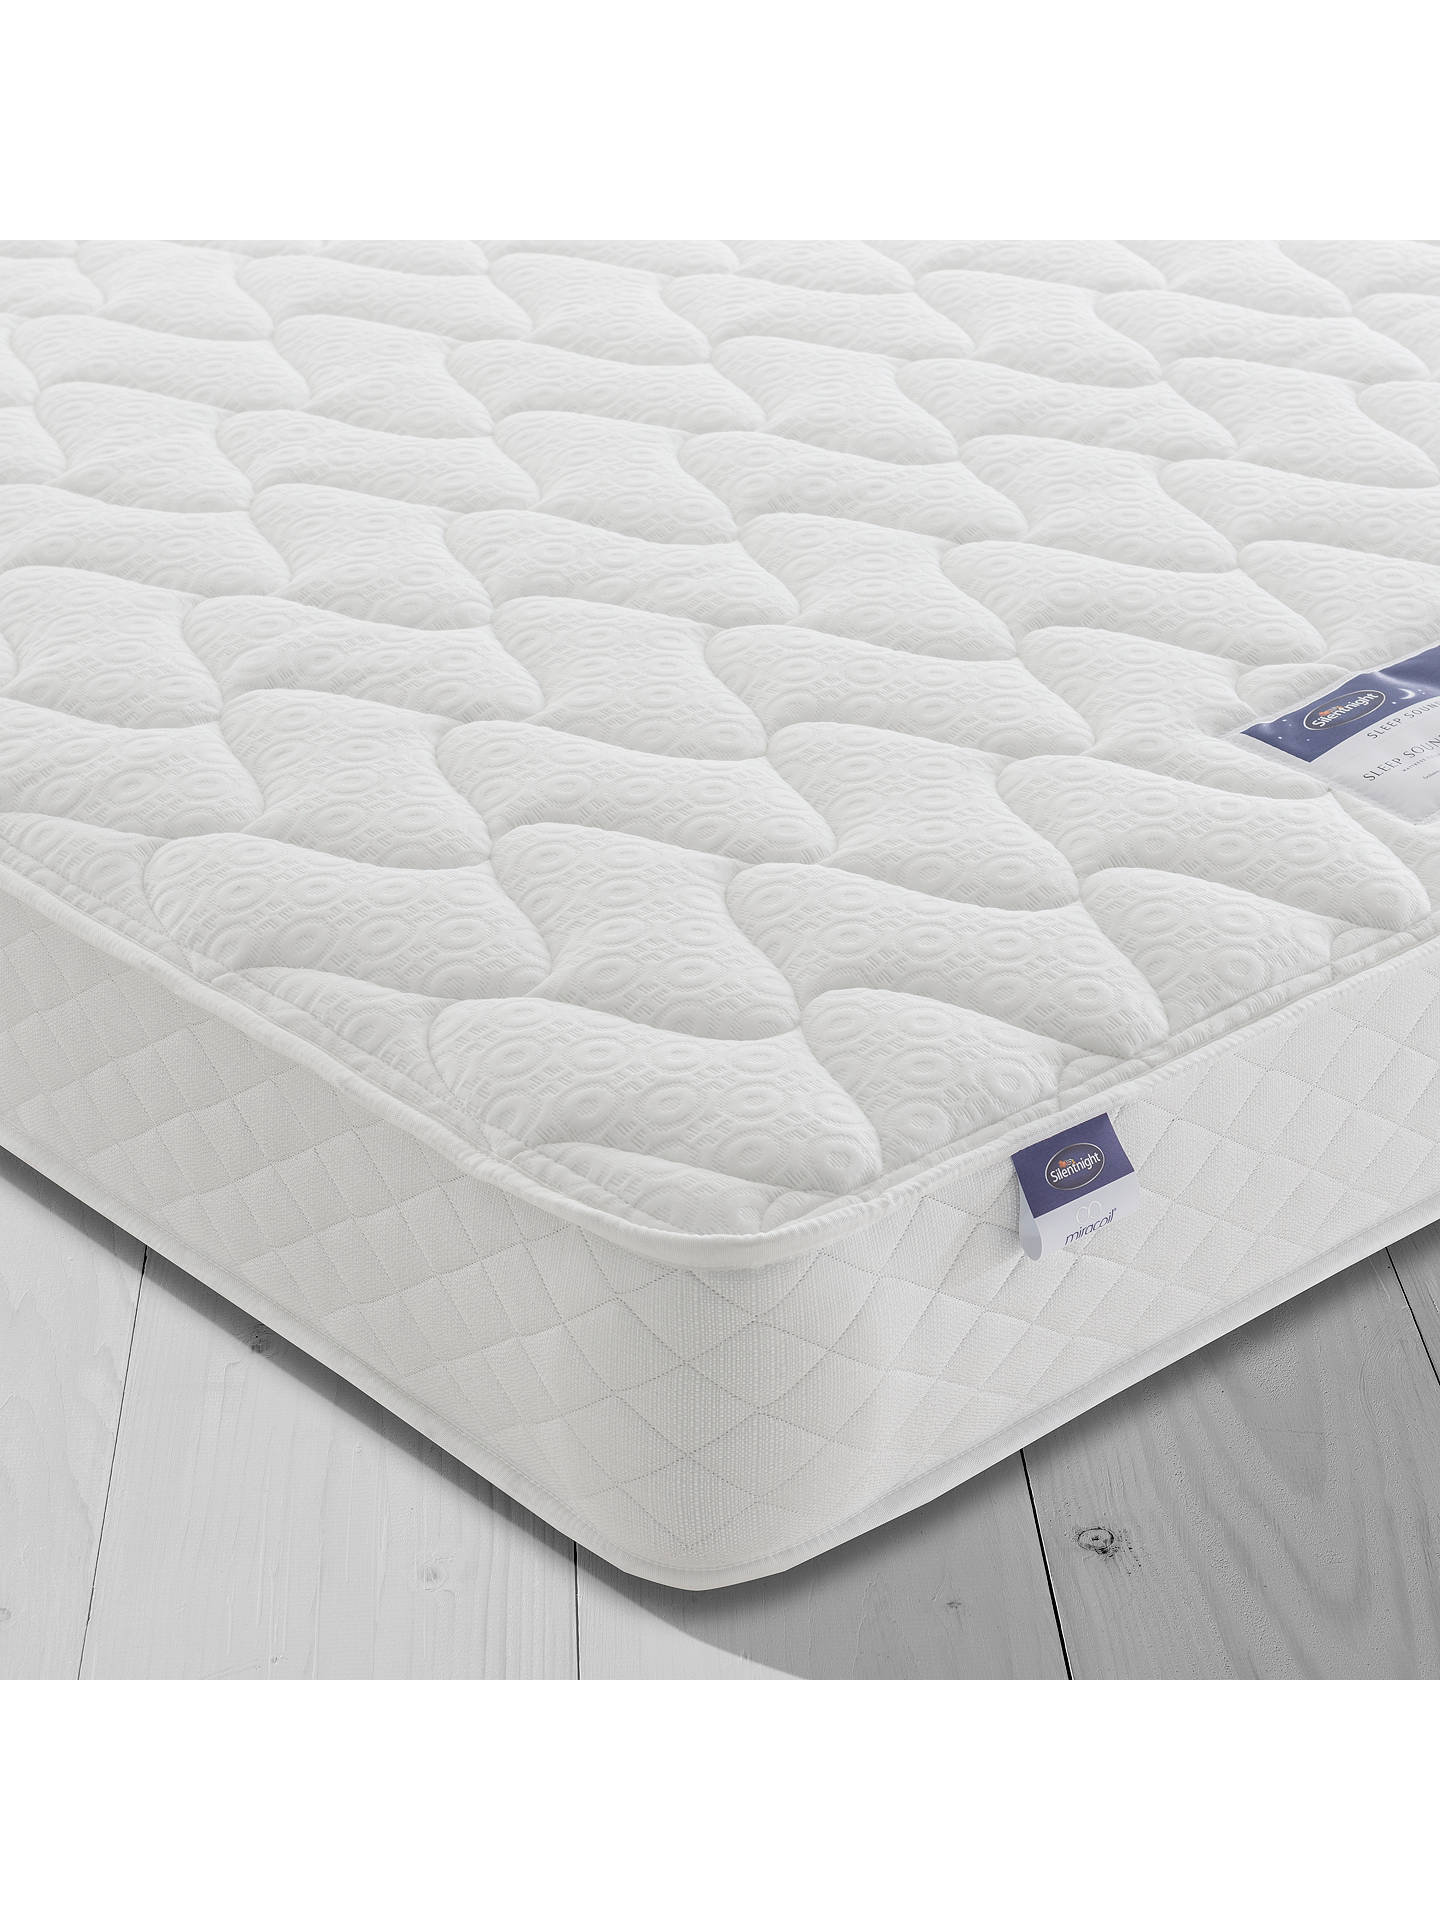 low priced 0ef17 79206 Silentnight Sleep Soundly Miracoil Comfort Mattress, Firm, Super King Size